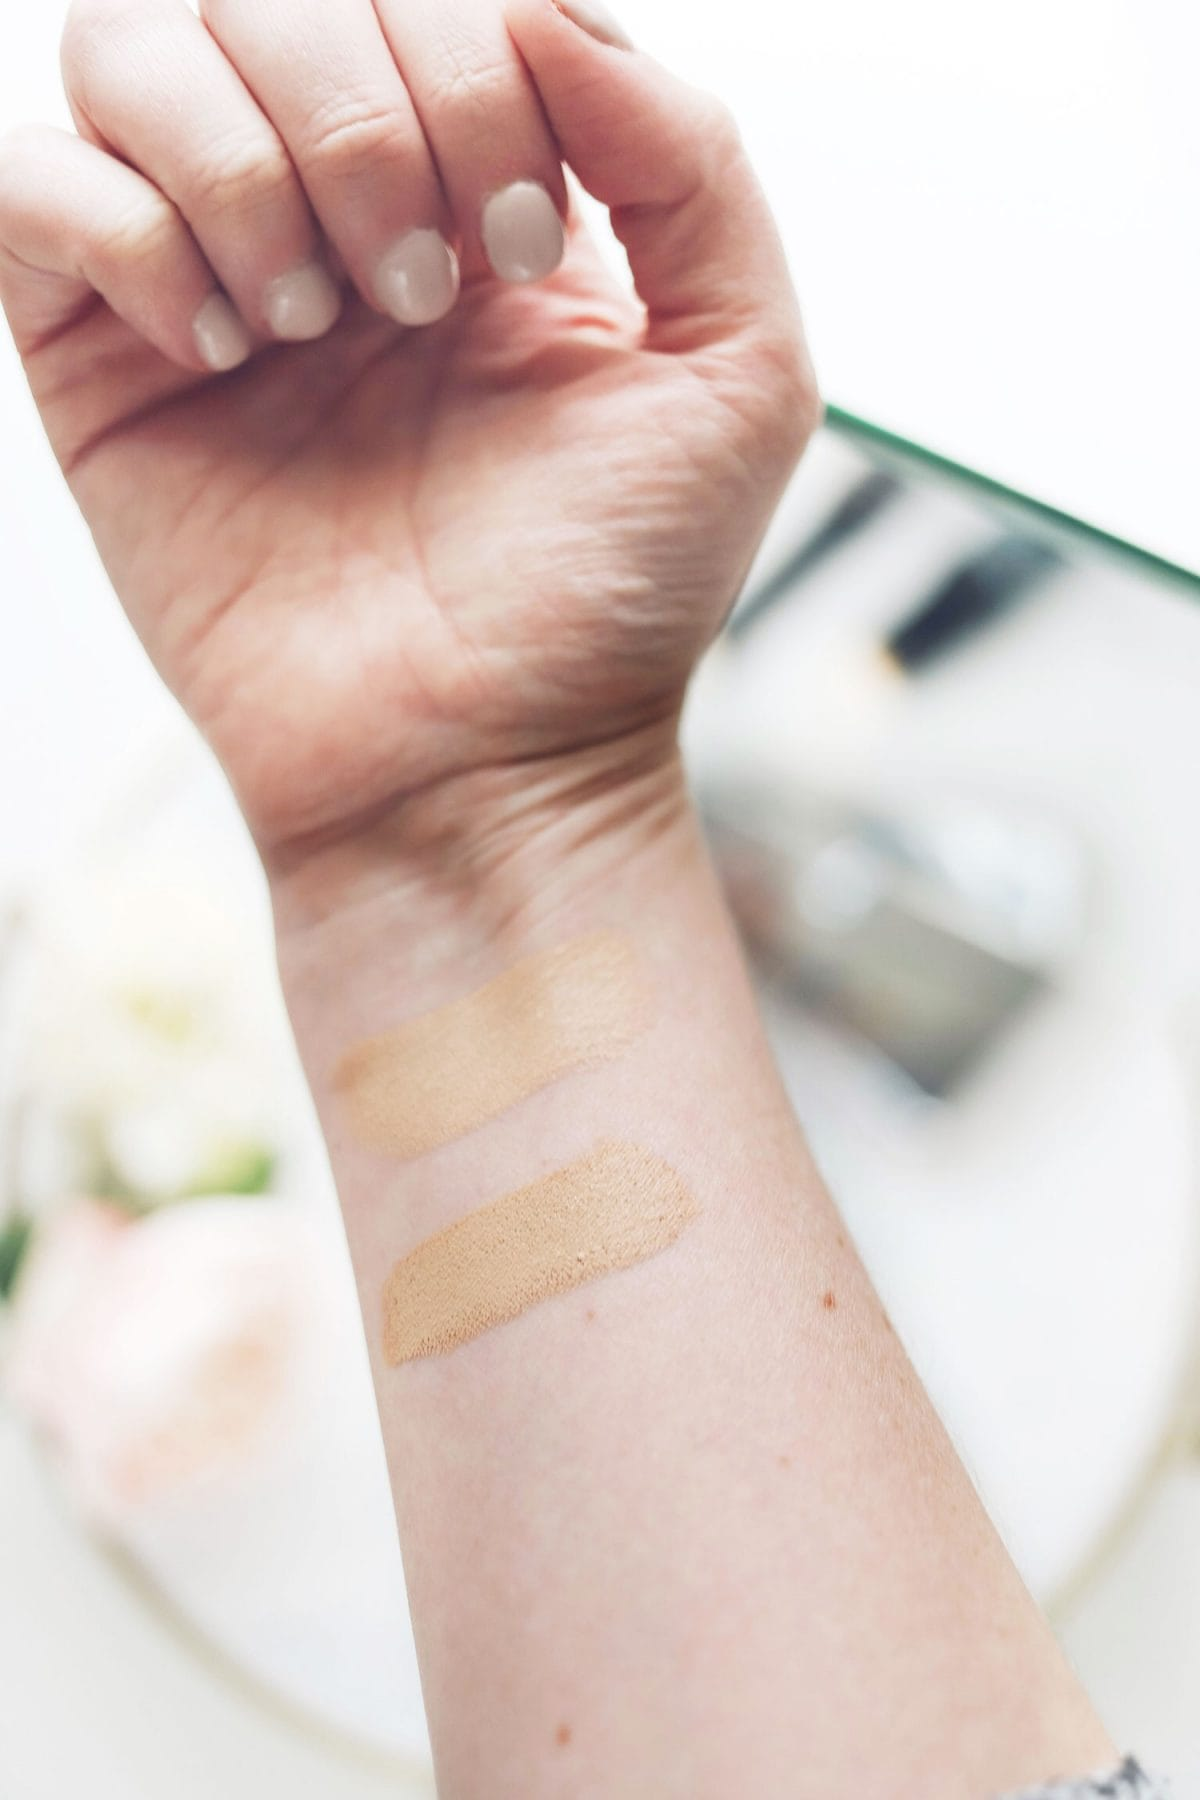 Houston beauty blogger Meg O. on the Go shares a dupe for the Hourglass Vanish Stick Foundation! Showing stick foundation swatches - Wet 'n Wild on top and Hourglass on the bottom